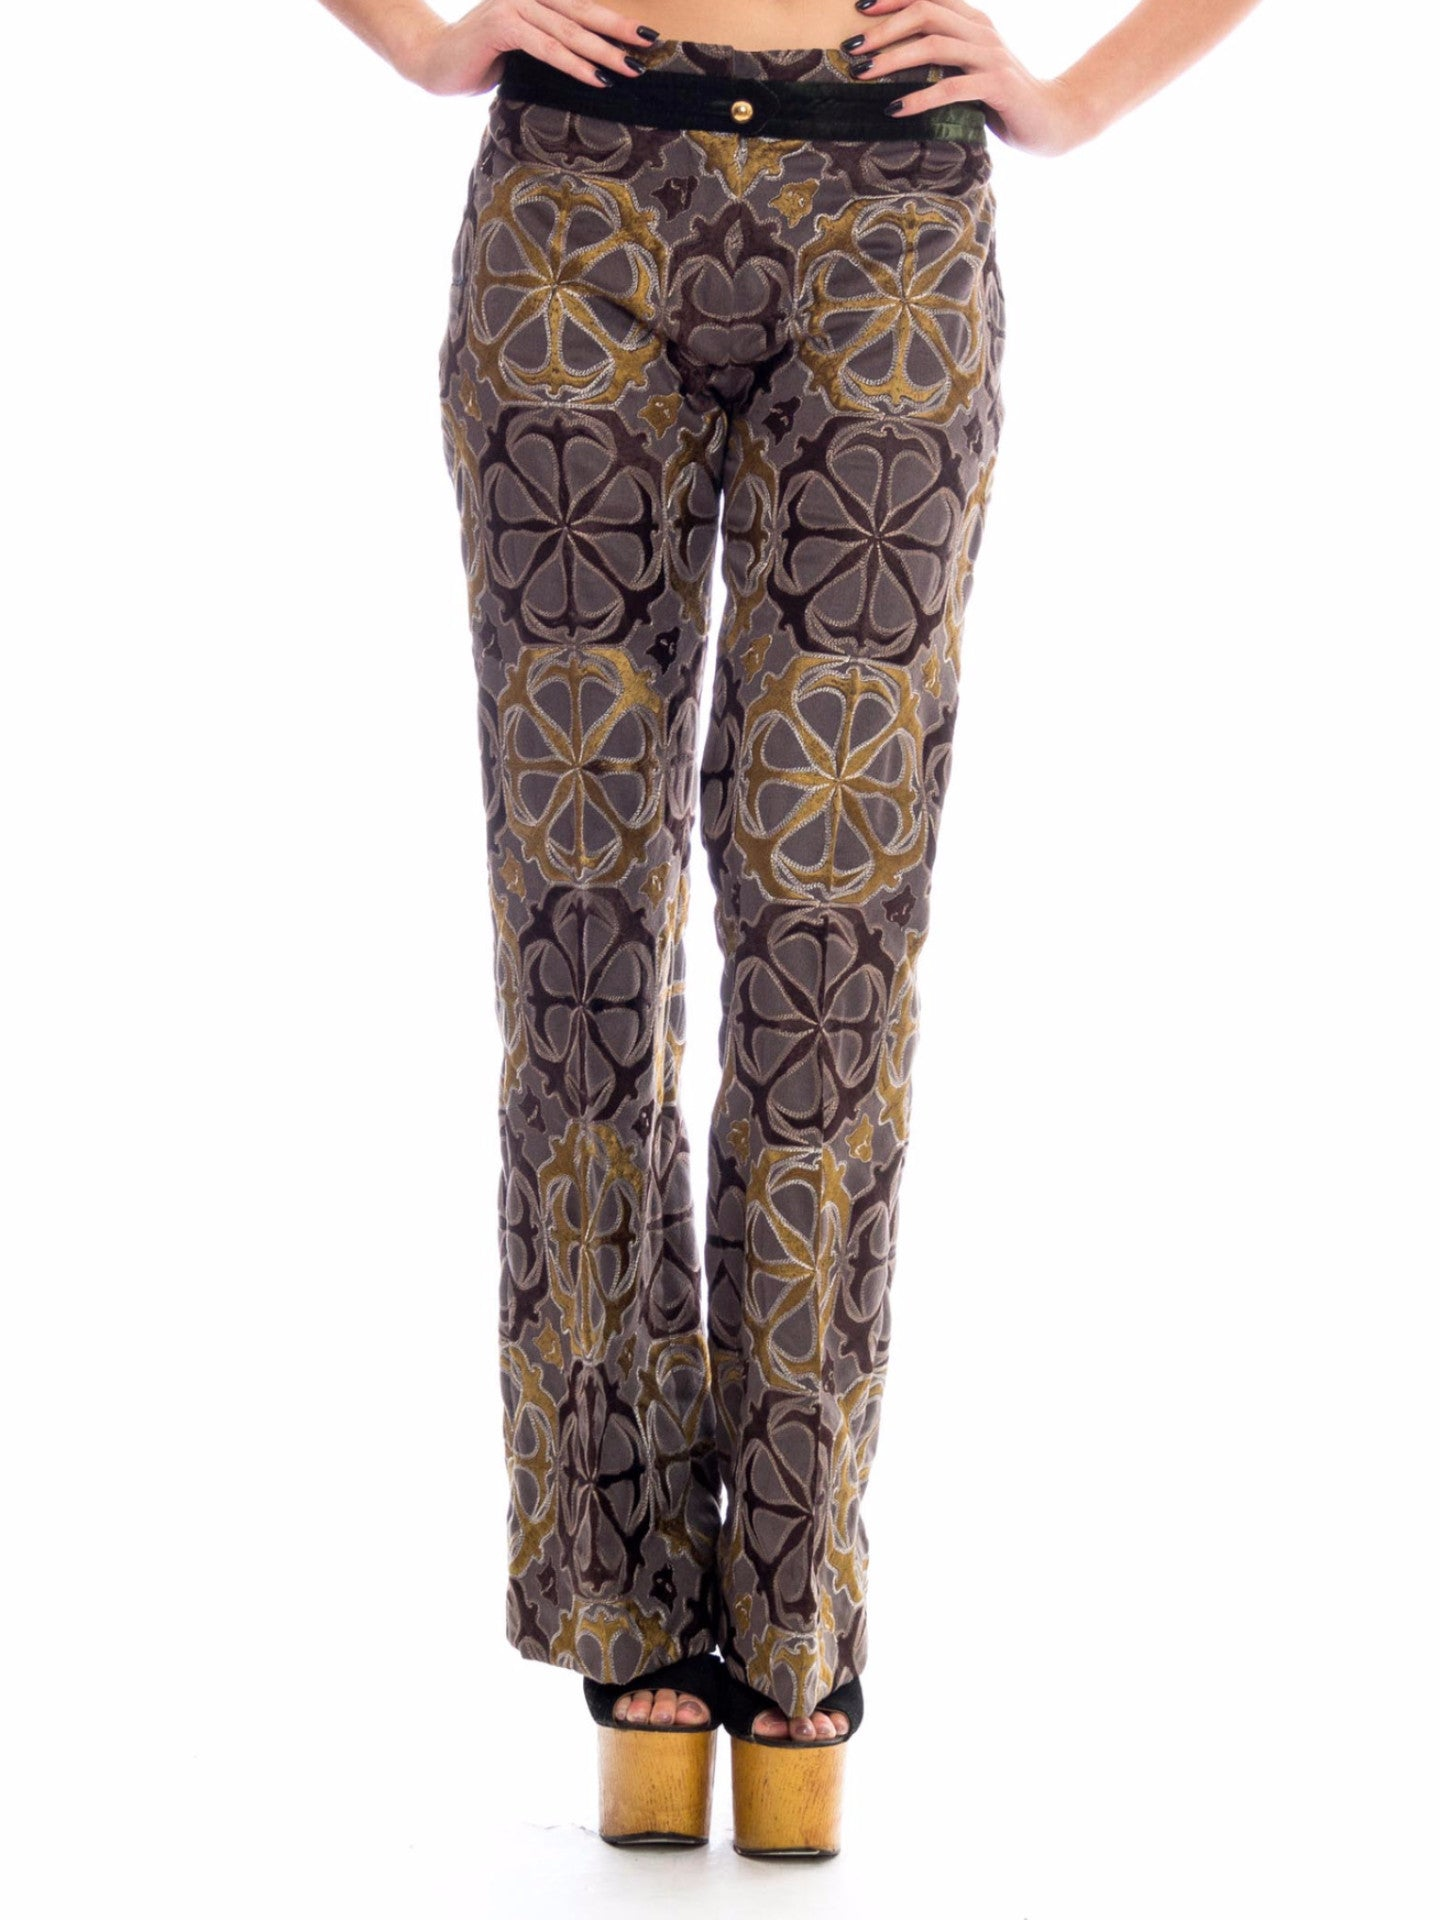 1990s Gianfranco Ferre Fully Embroidered Trousers